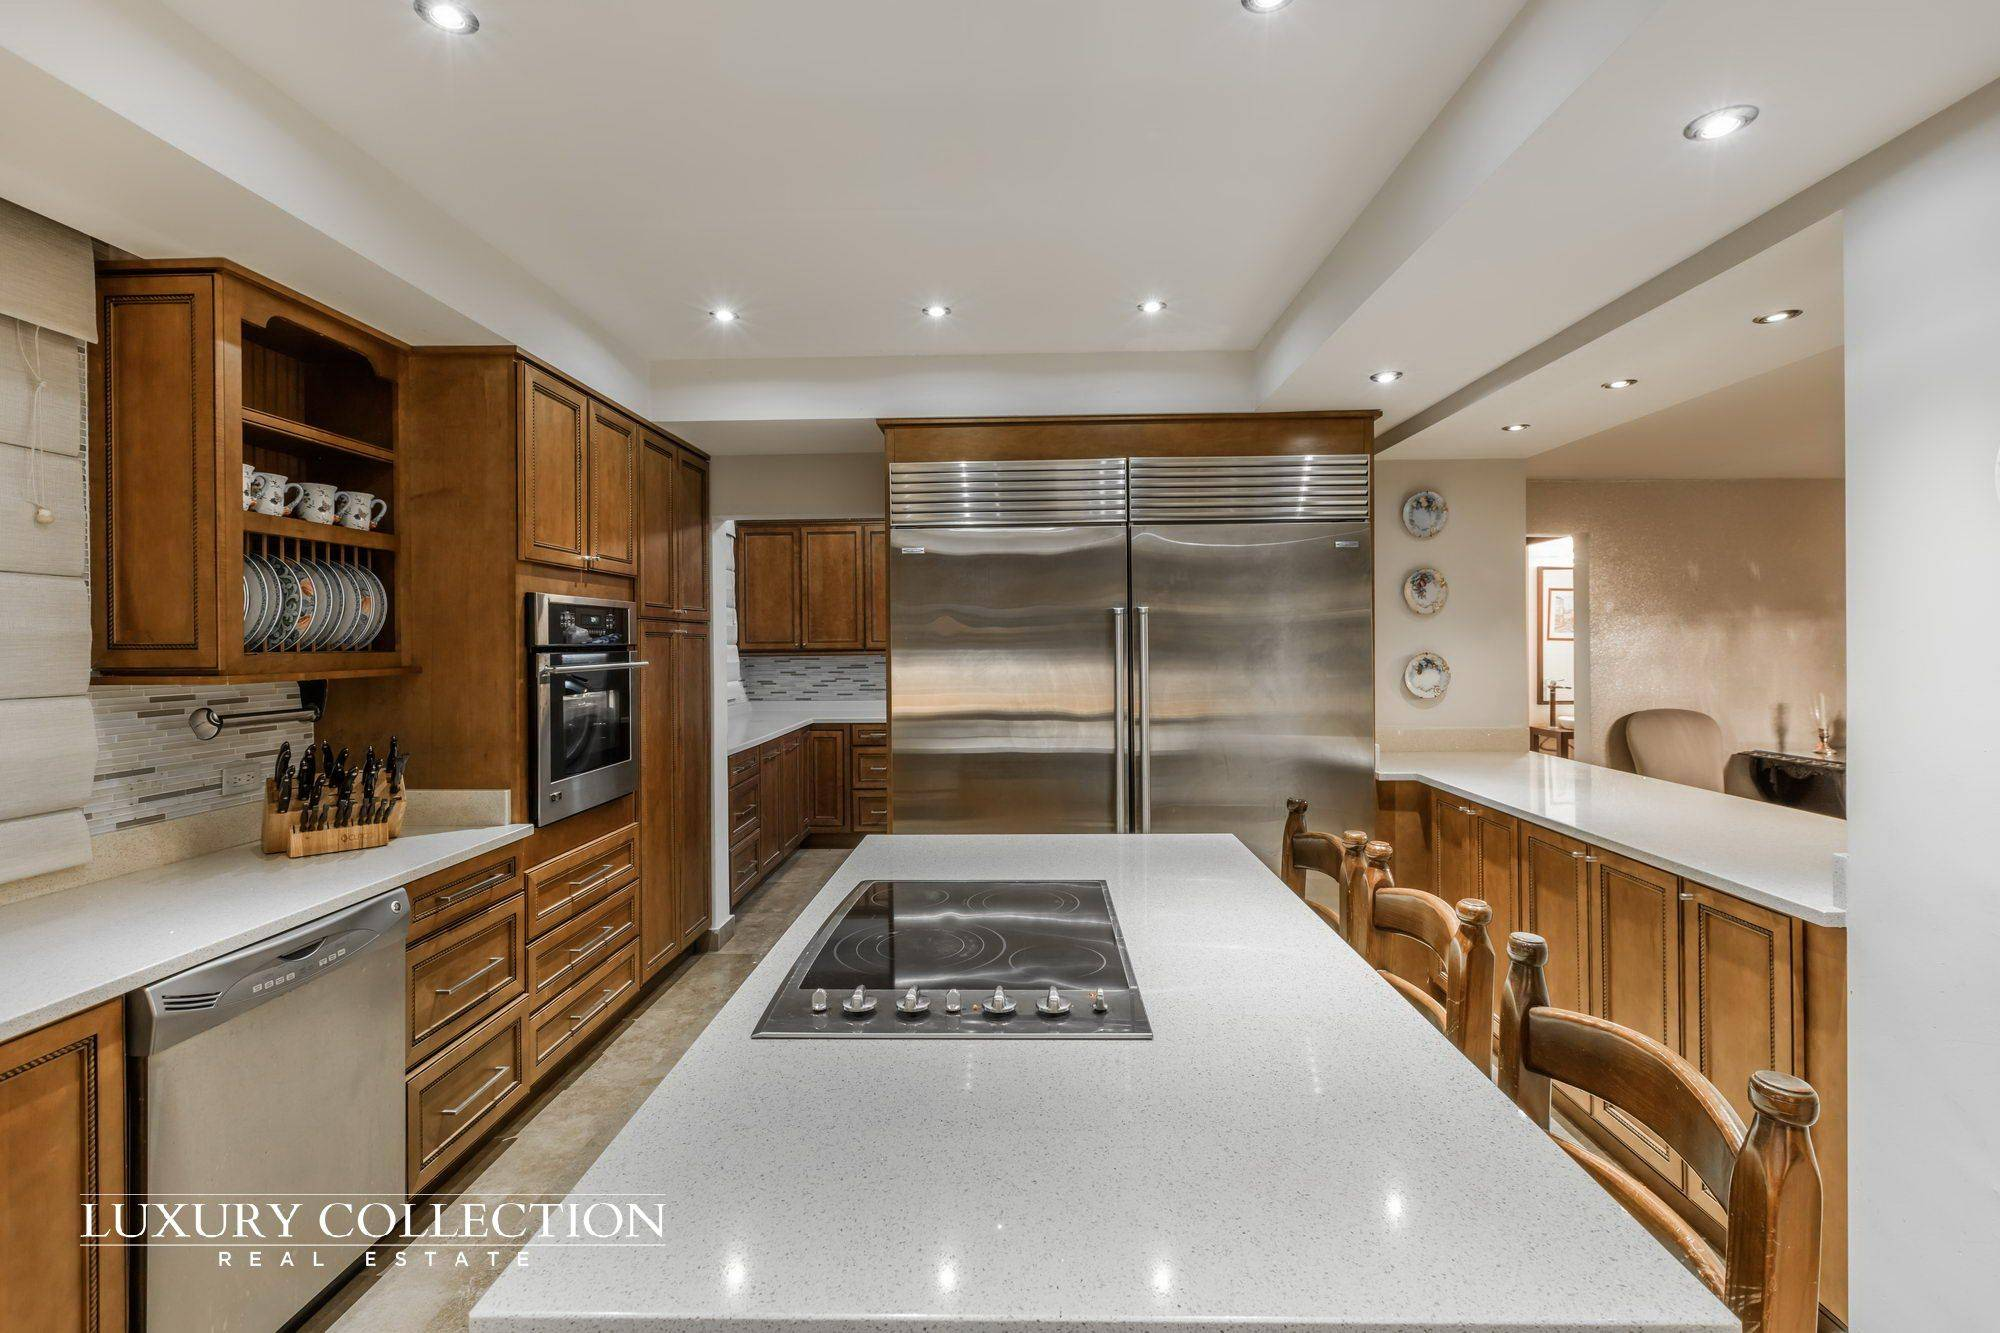 GARDEN HILLS SOUTH - LUXURY COLLECTION REAL ESTATE